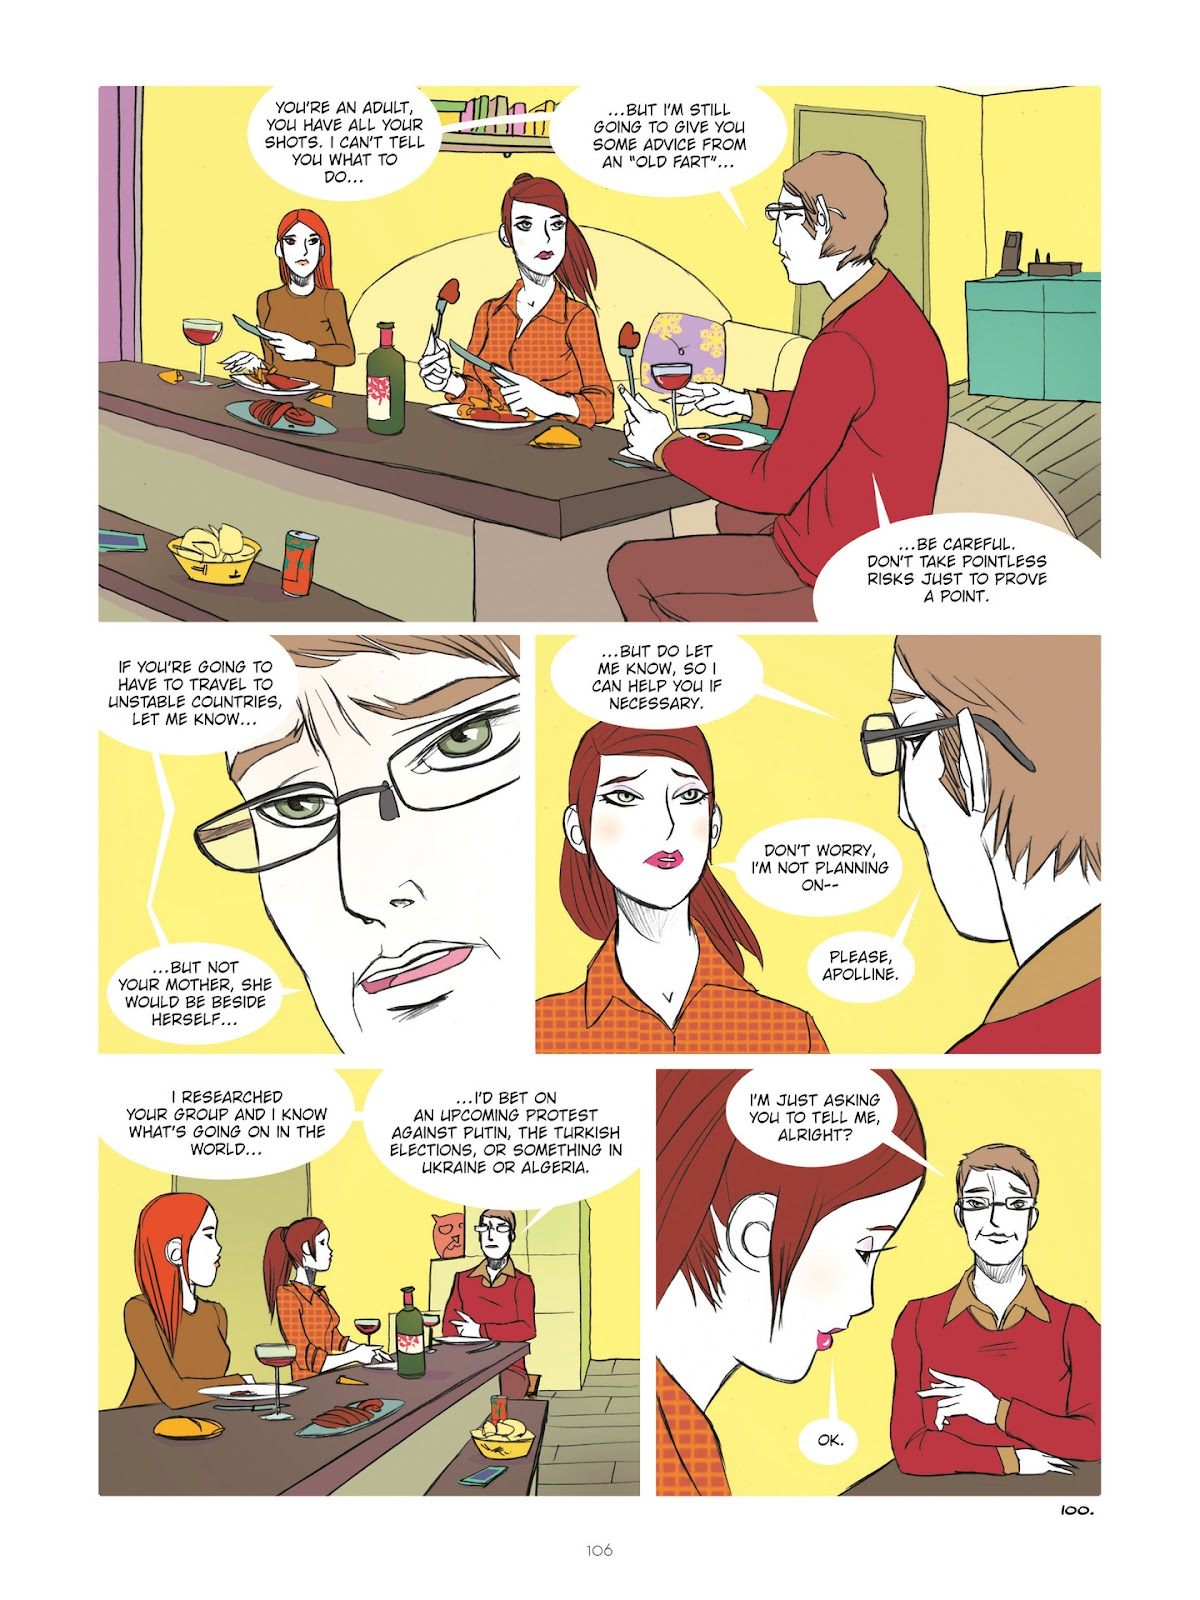 Read online Diary of A Femen comic -  Issue # TPB - 108